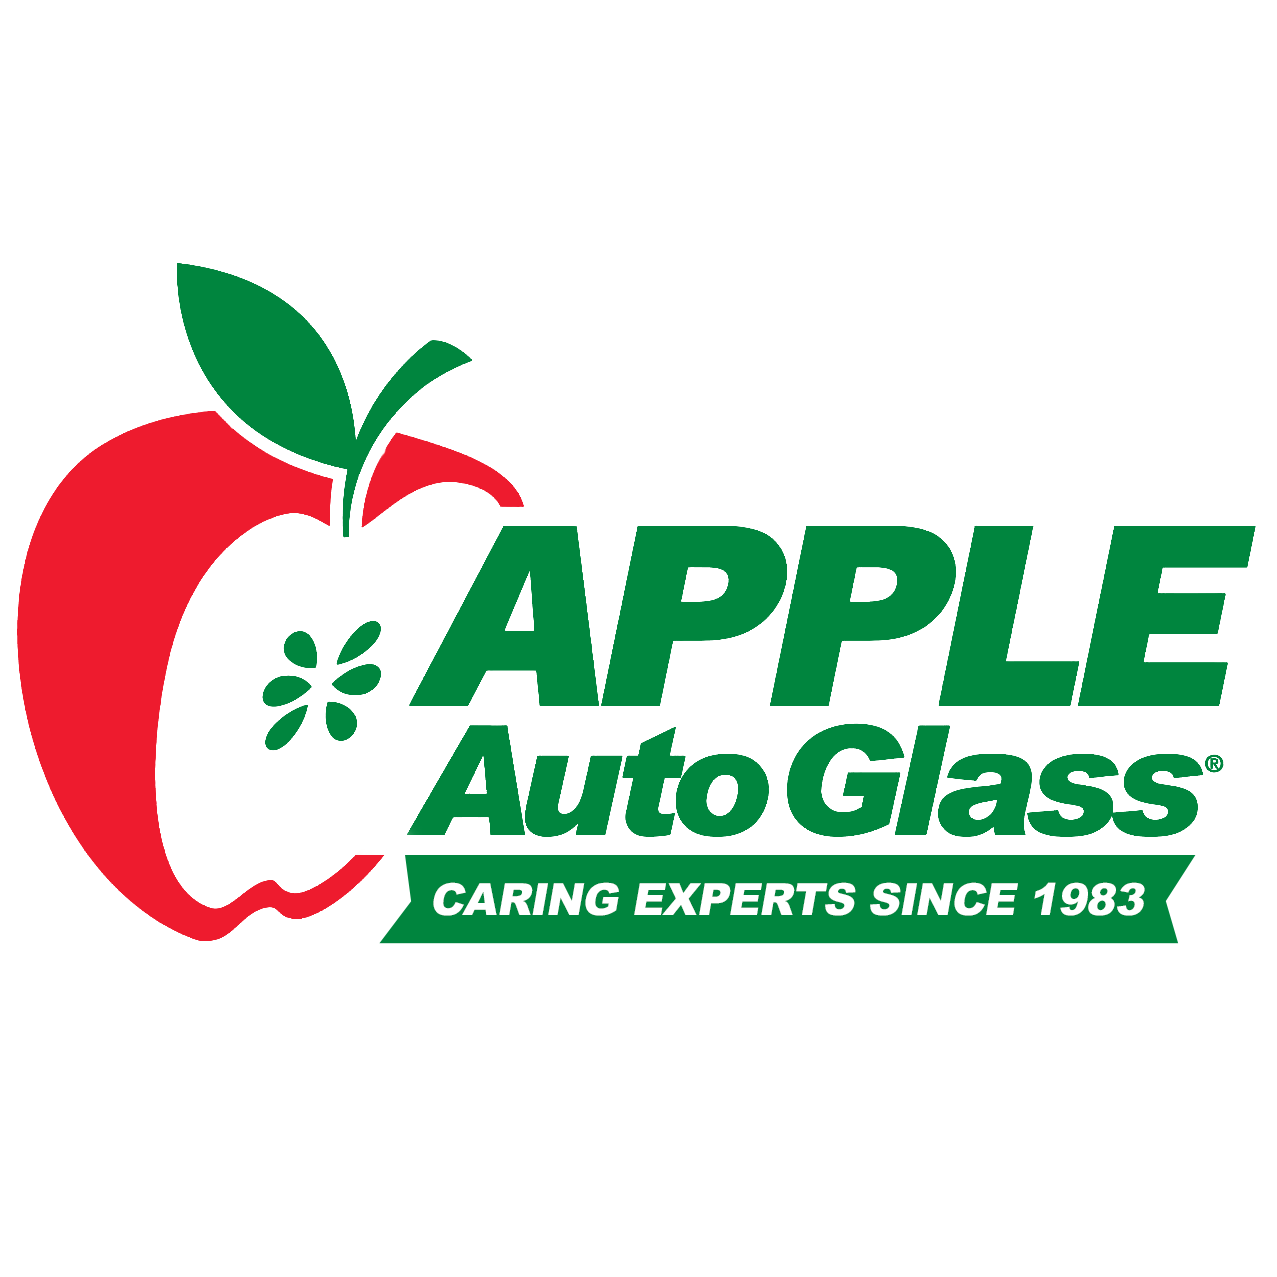 Apple Auto Glass in Abbotsford